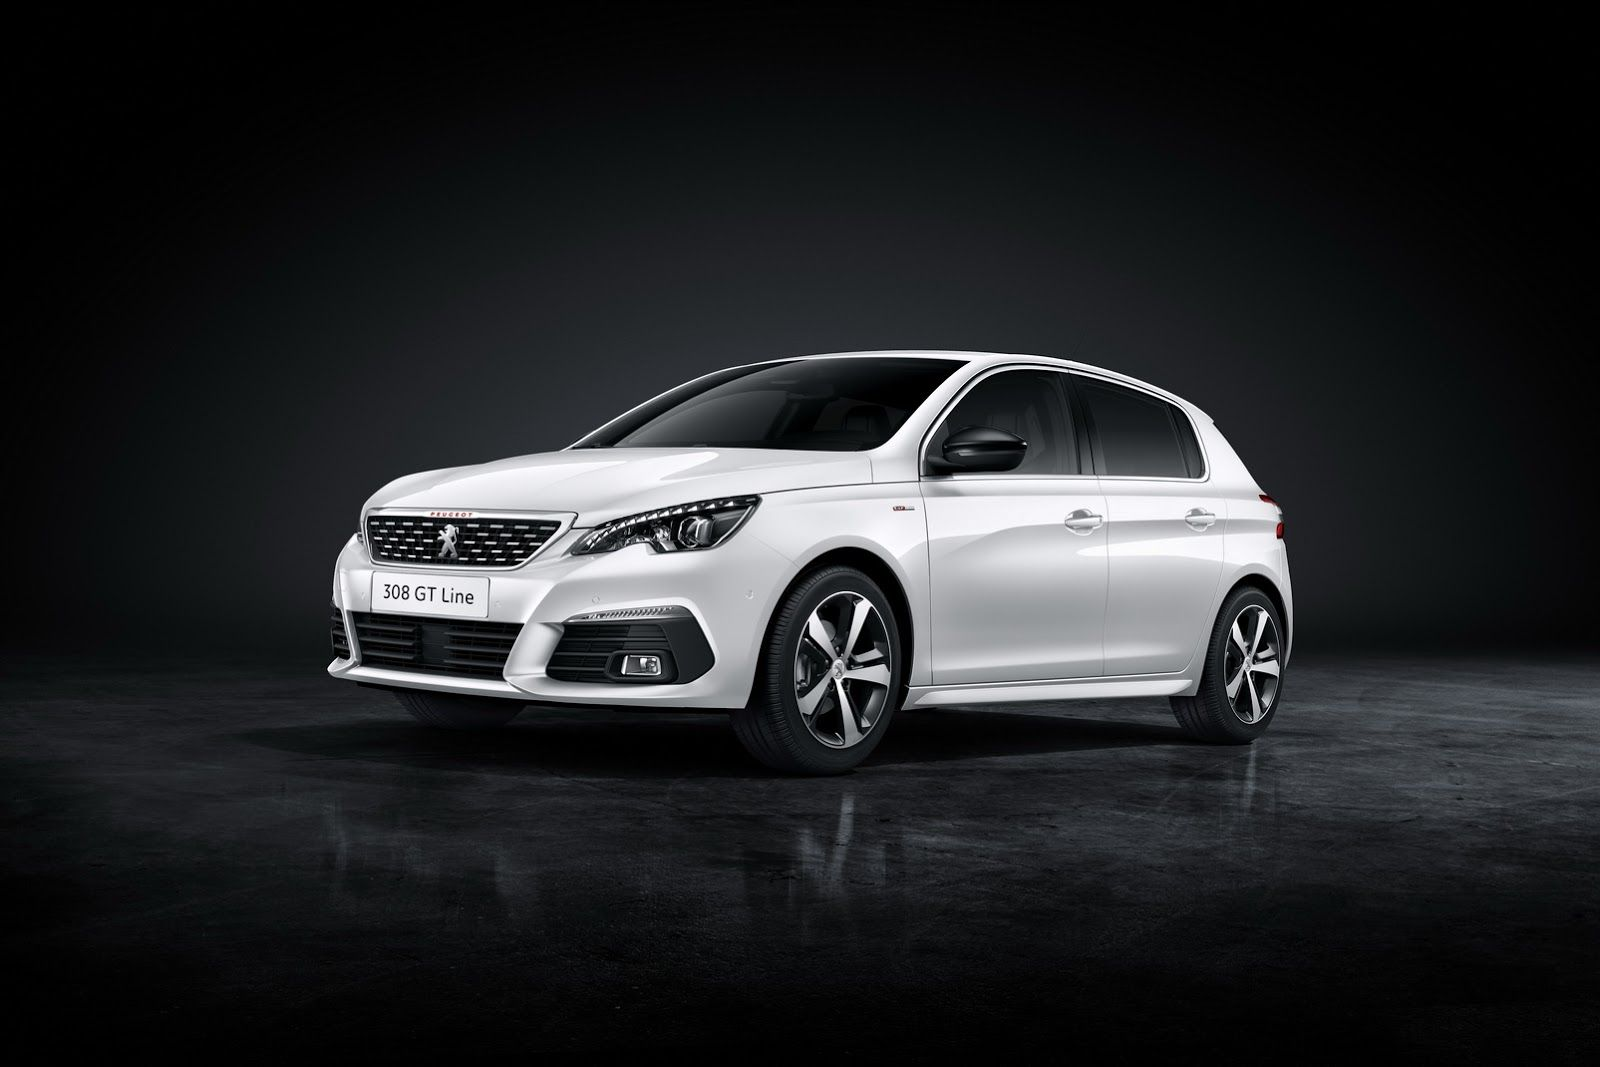 Peugeot Details Facelifted 308 Doesn T Skimp On Pics W Video Carscoops Peugeot 308 Peugeot Auto News